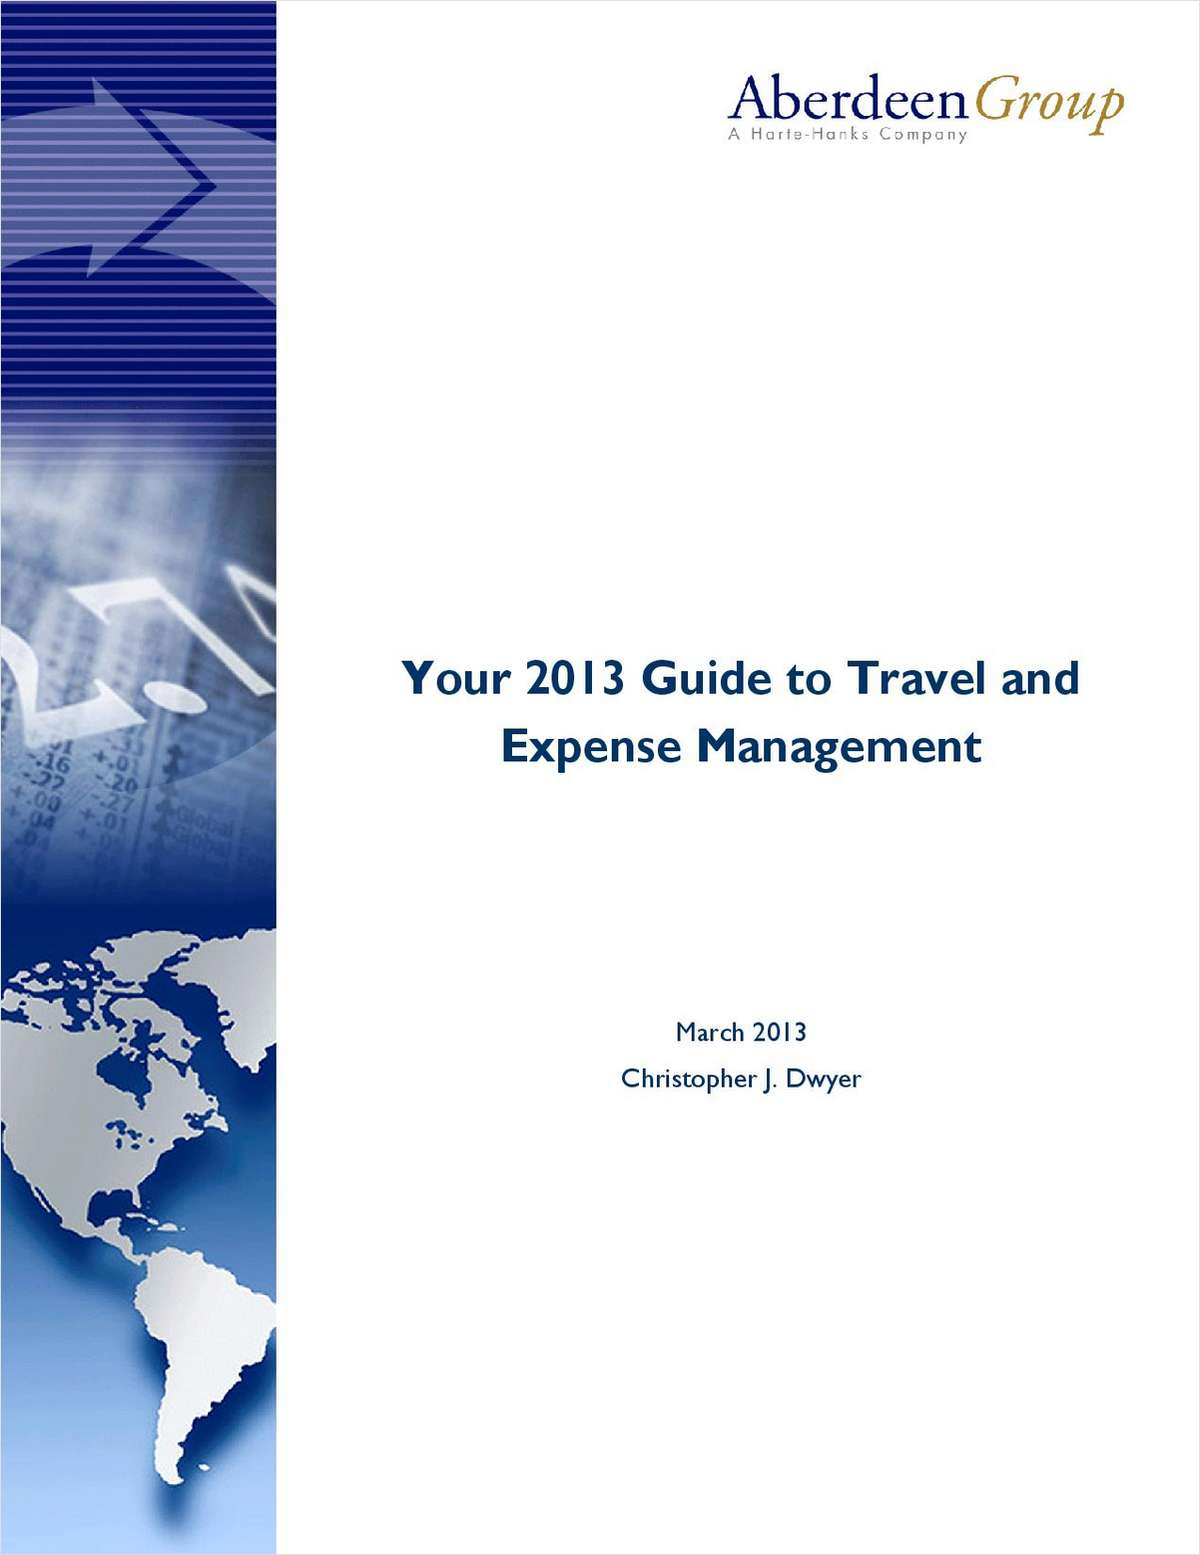 Your 2013 Guide to Travel and Expense Management